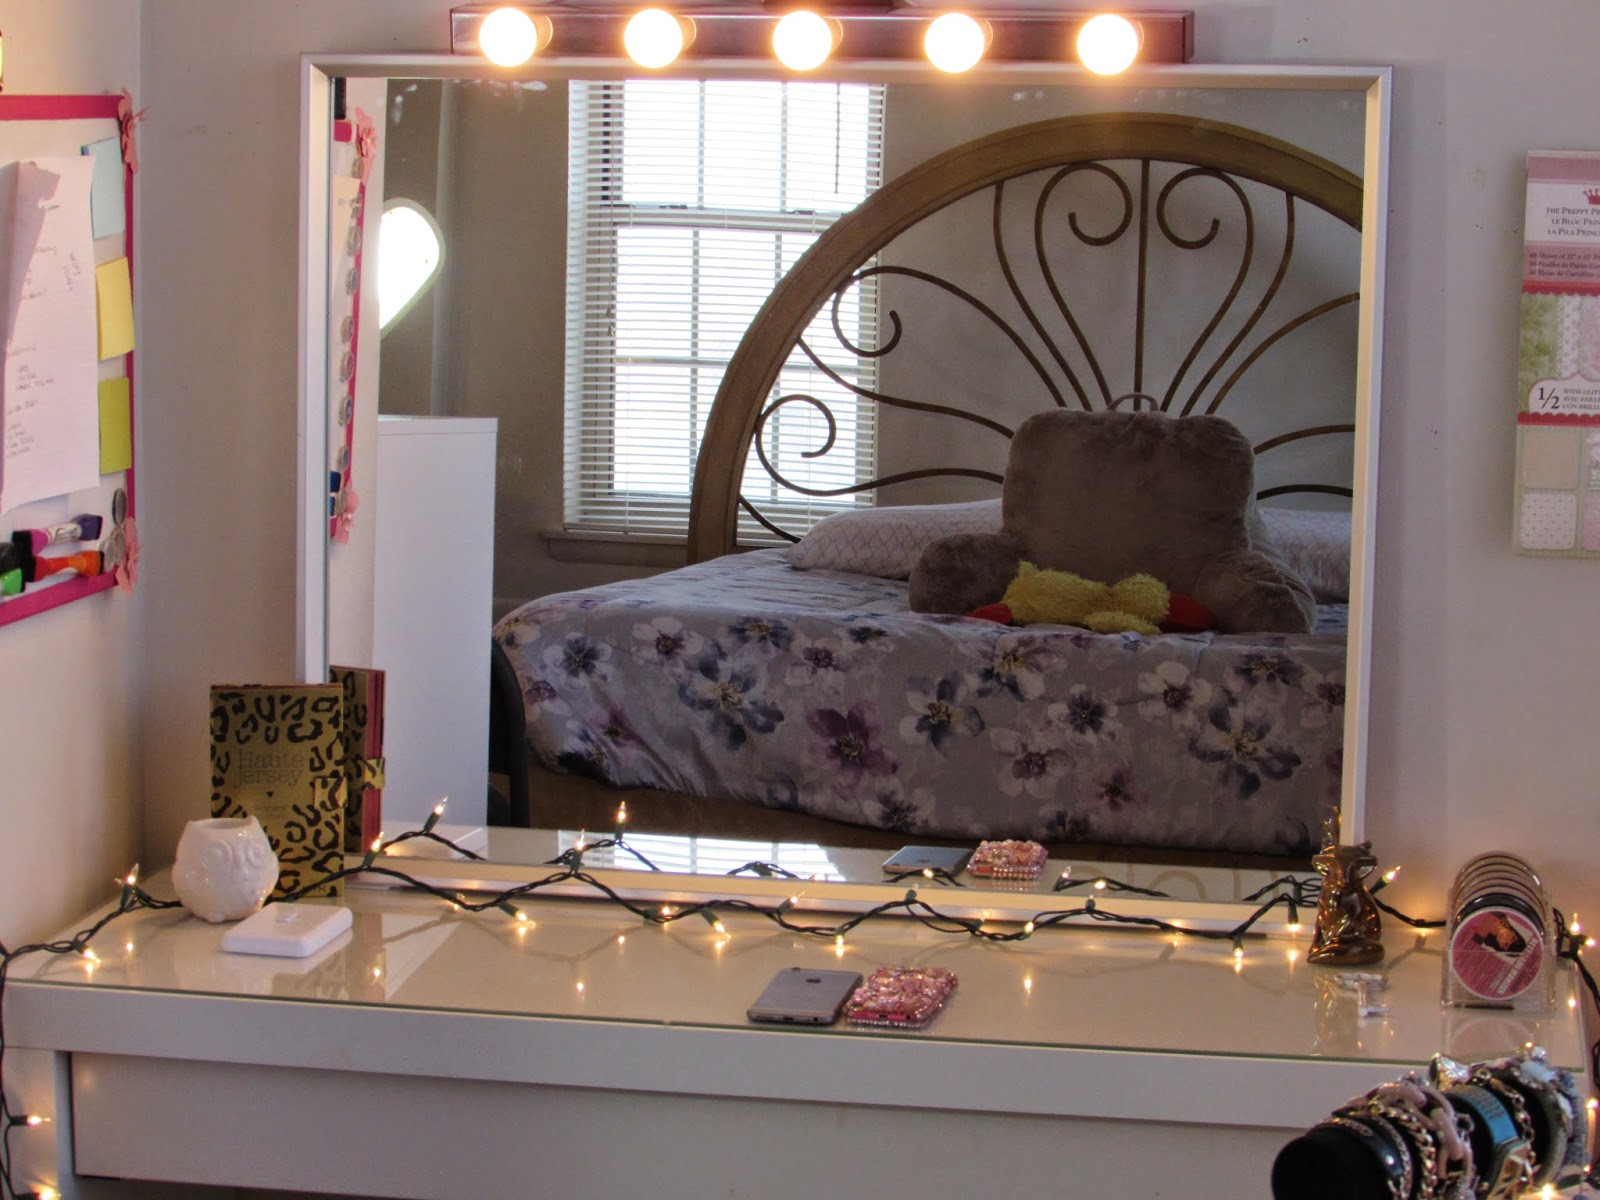 Vanity Makeup Mirror with Light Bulbs | Vanity Broadway Mirror | Hollywood Vanity Mirror with Lights